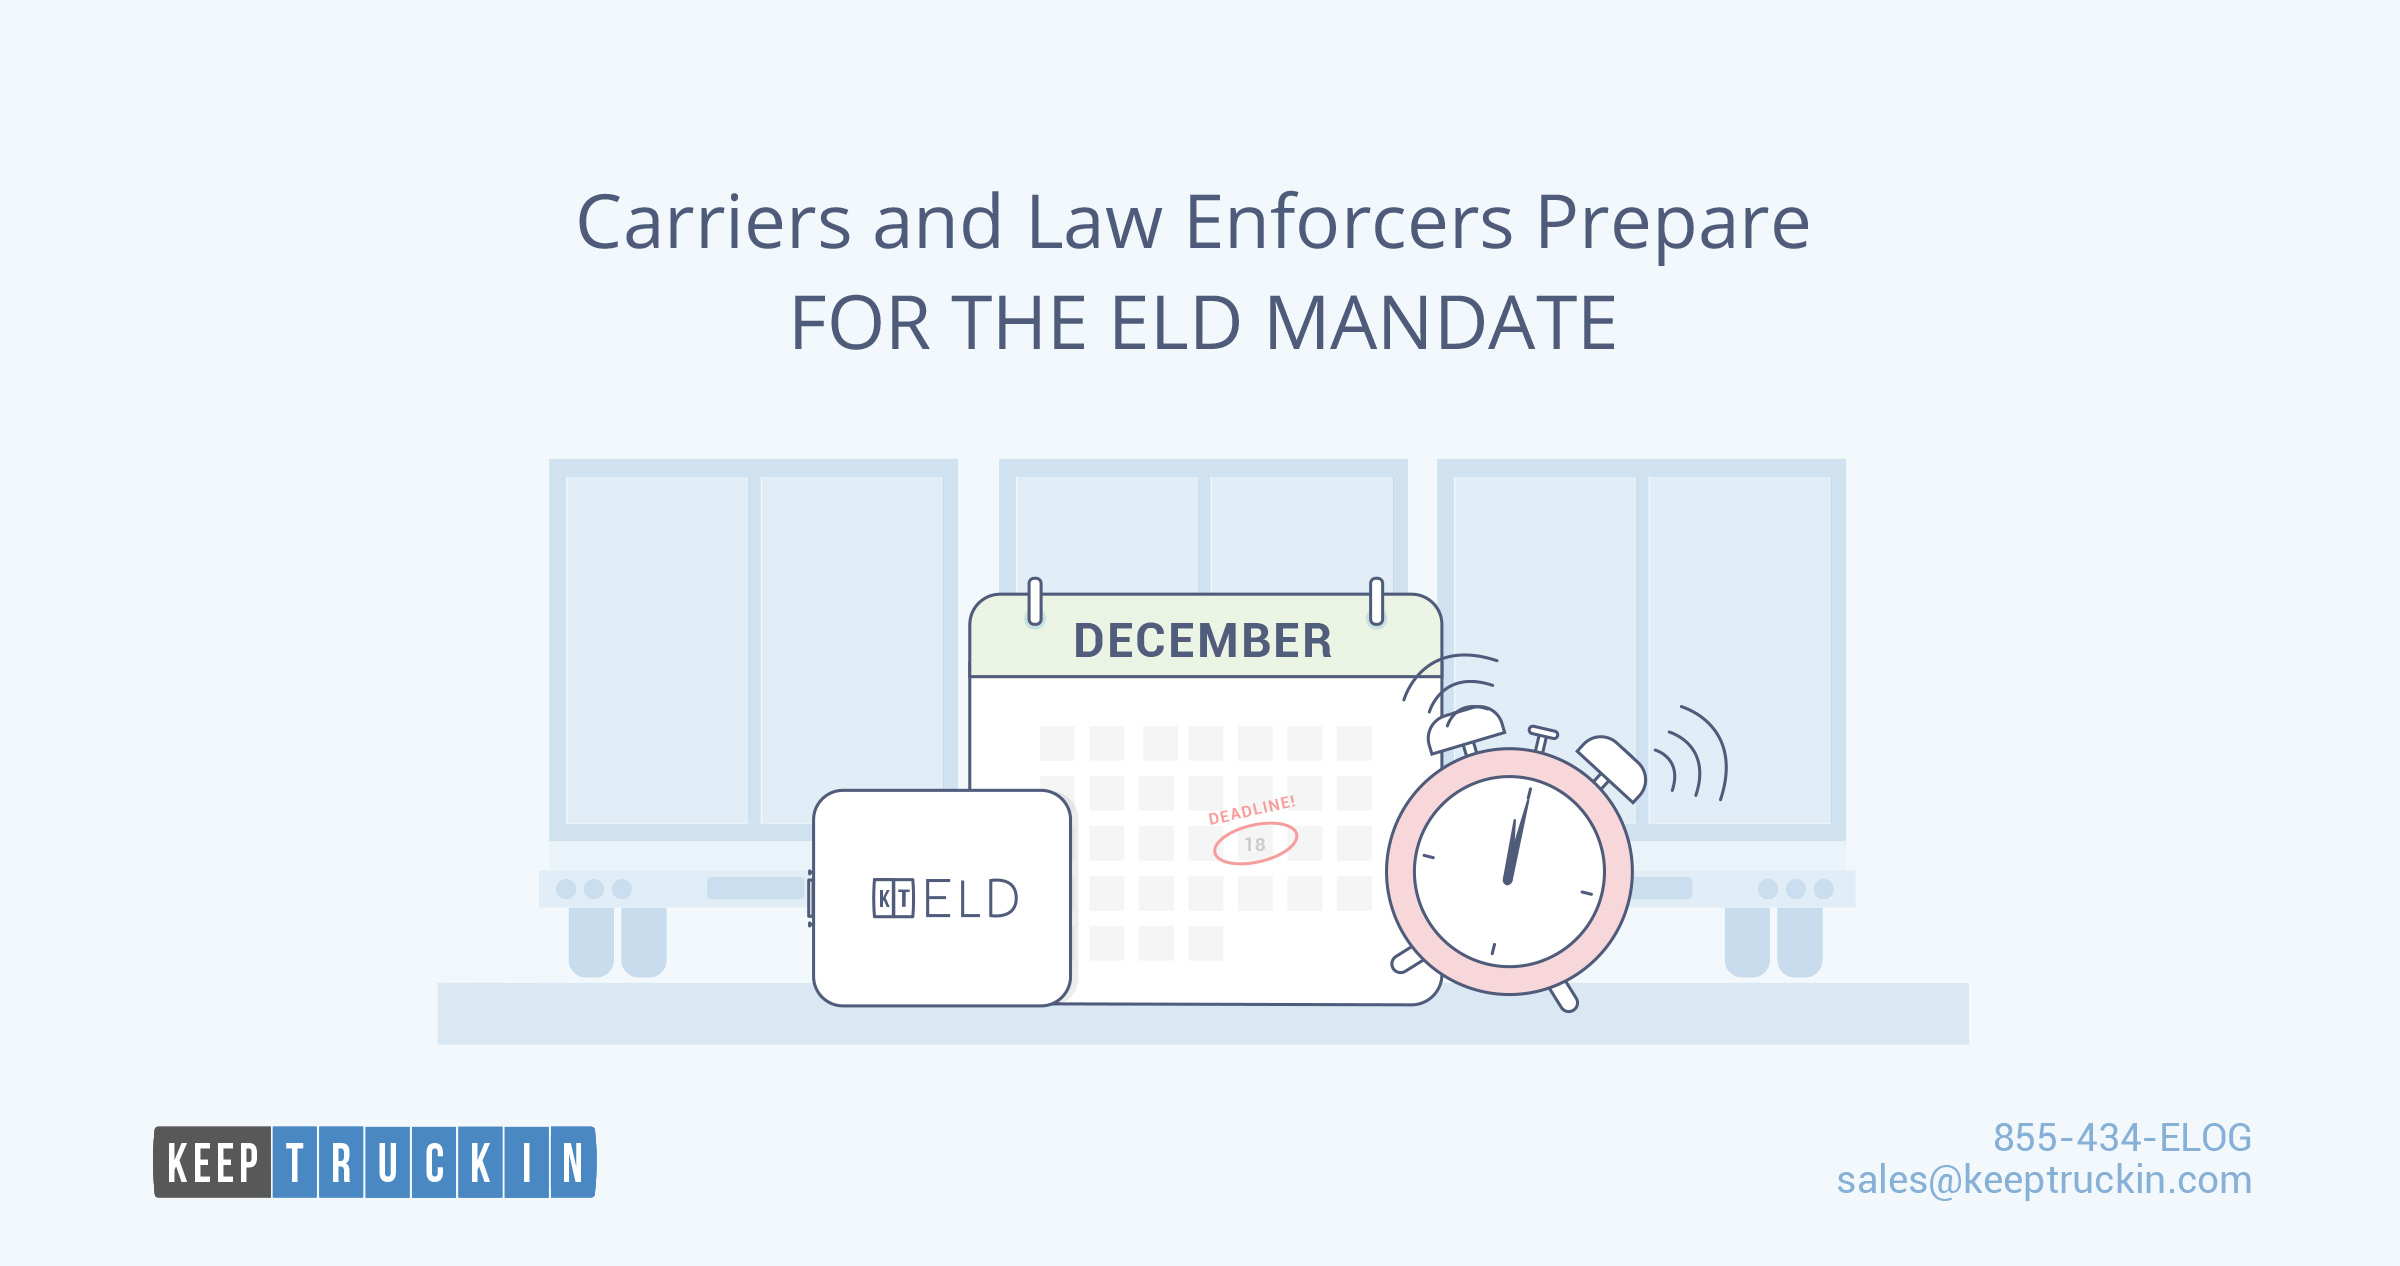 Carriers and Law Enforcers Prepare for the ELD Mandate